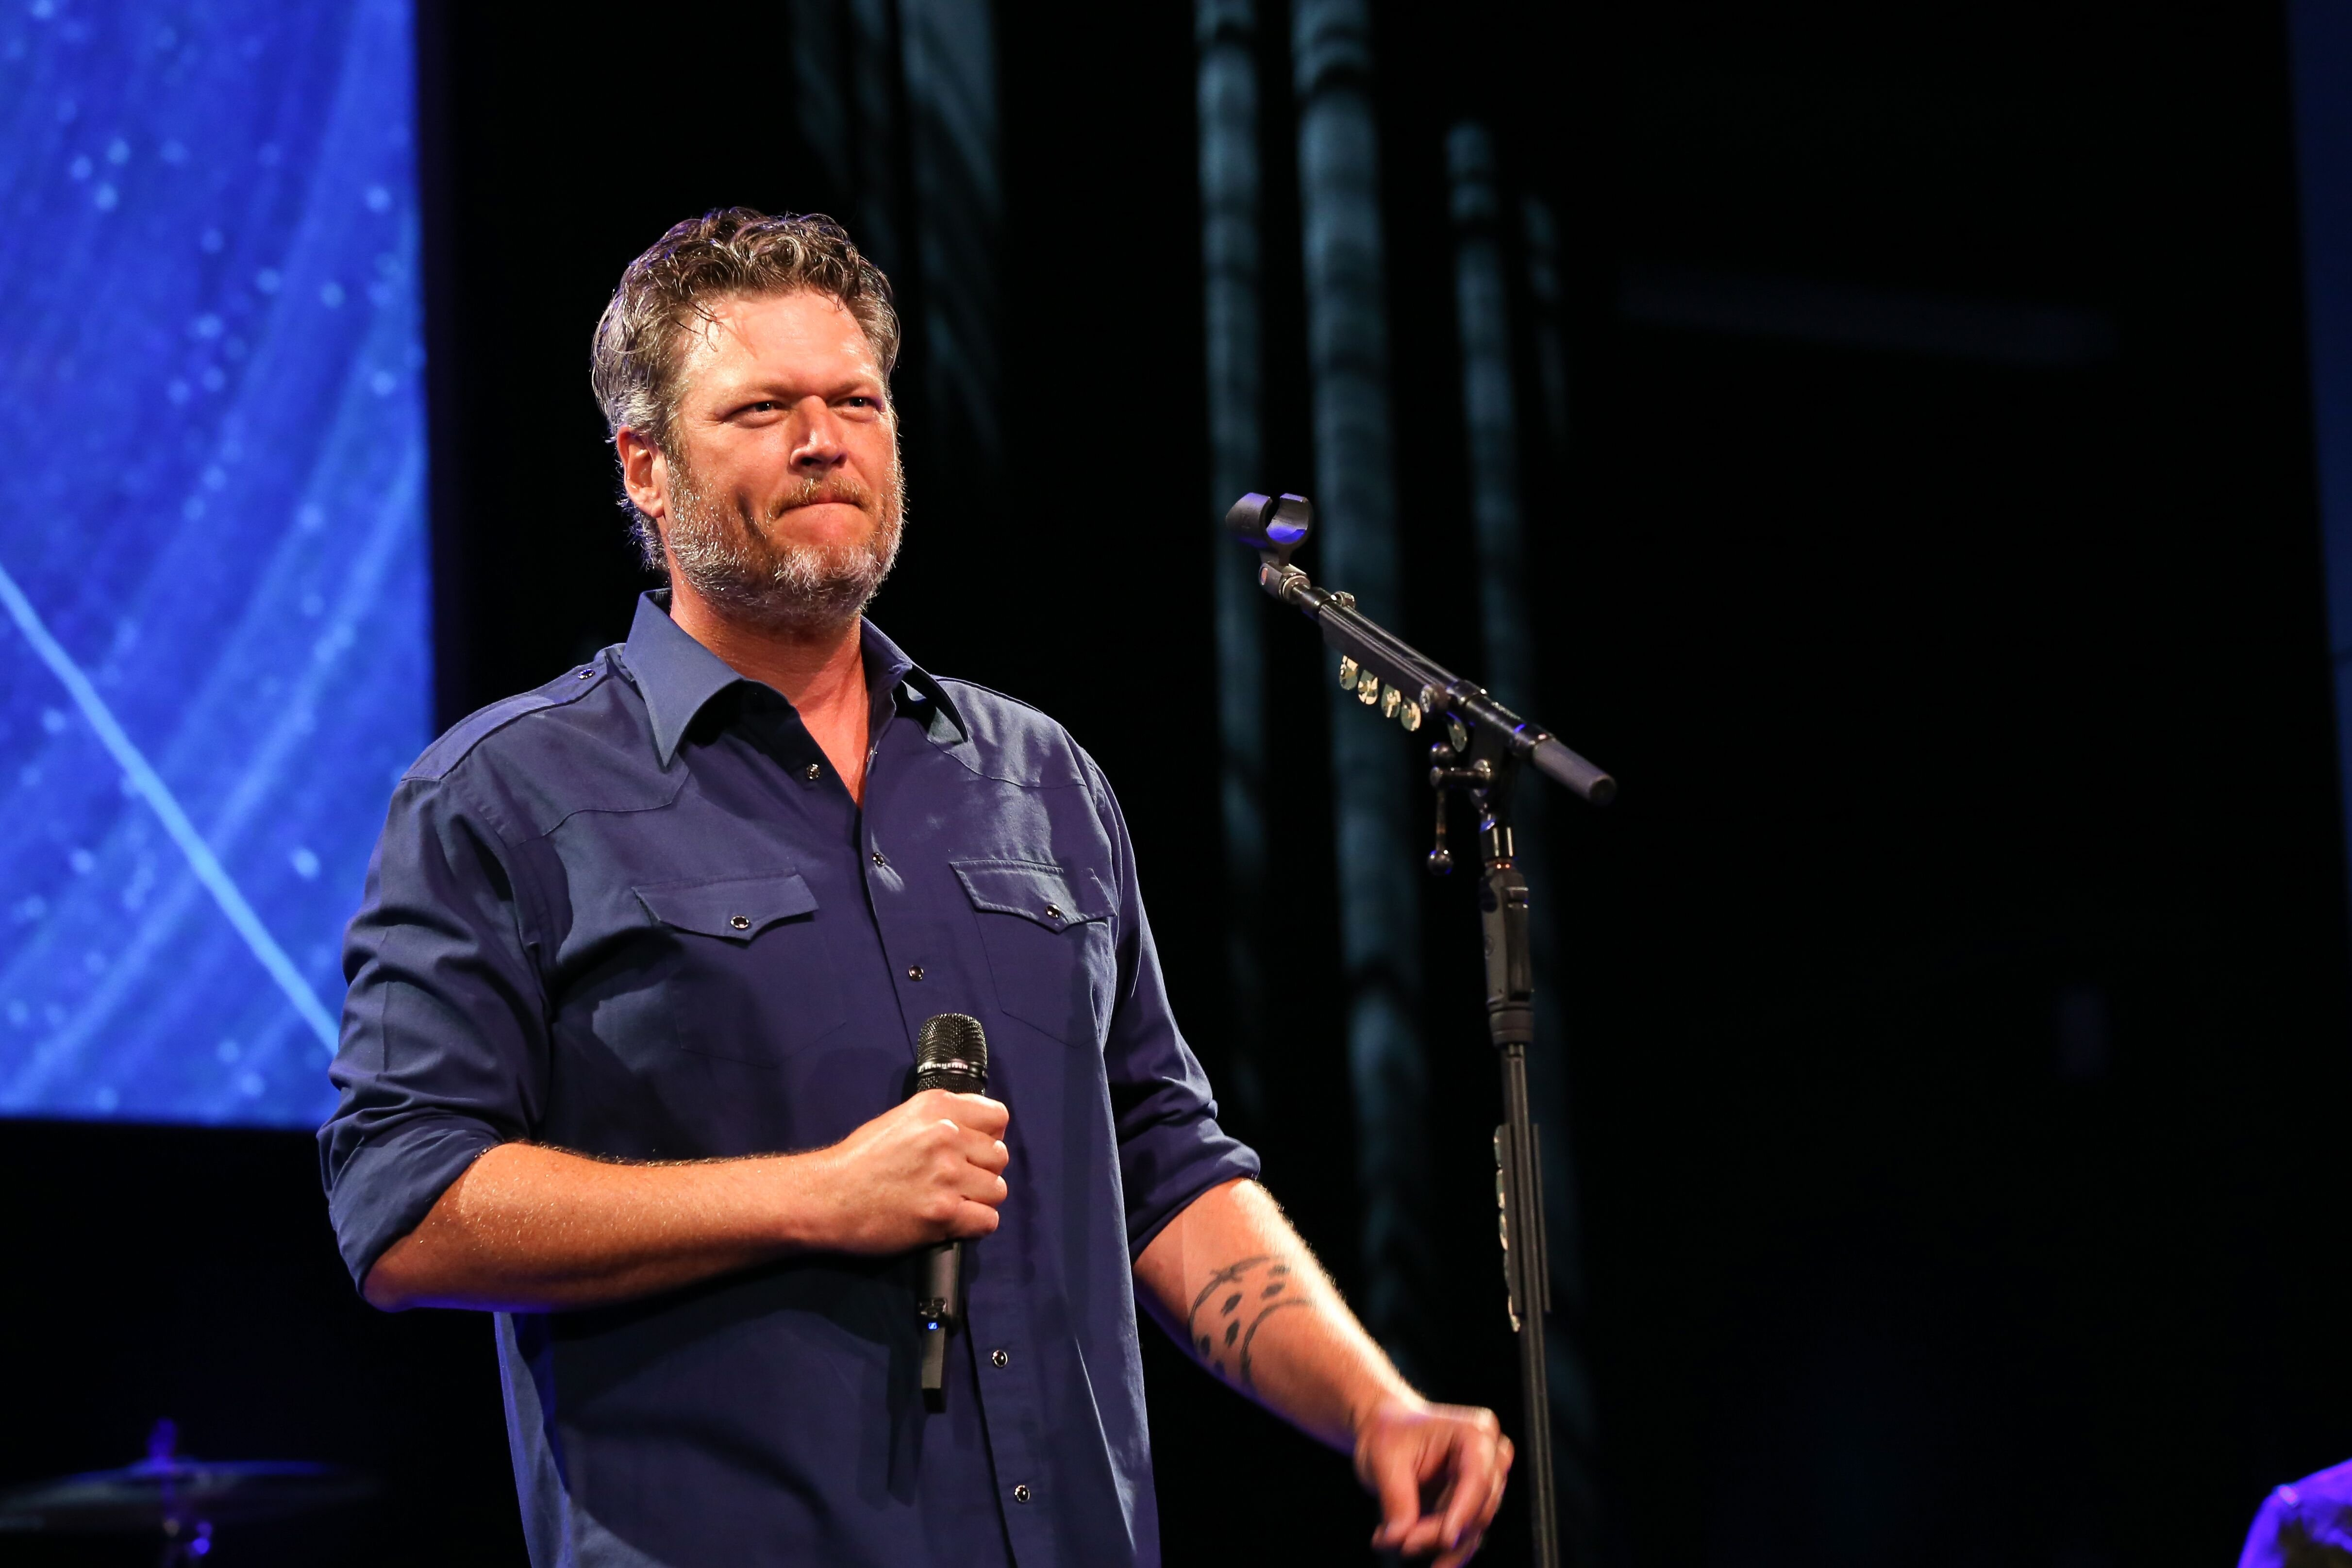 Blake Shelton at the Musicians On Call 20th Anniversary Kickoff Celebration on May 31, 2019, in Nashville, Tennessee | Photo: Getty Images